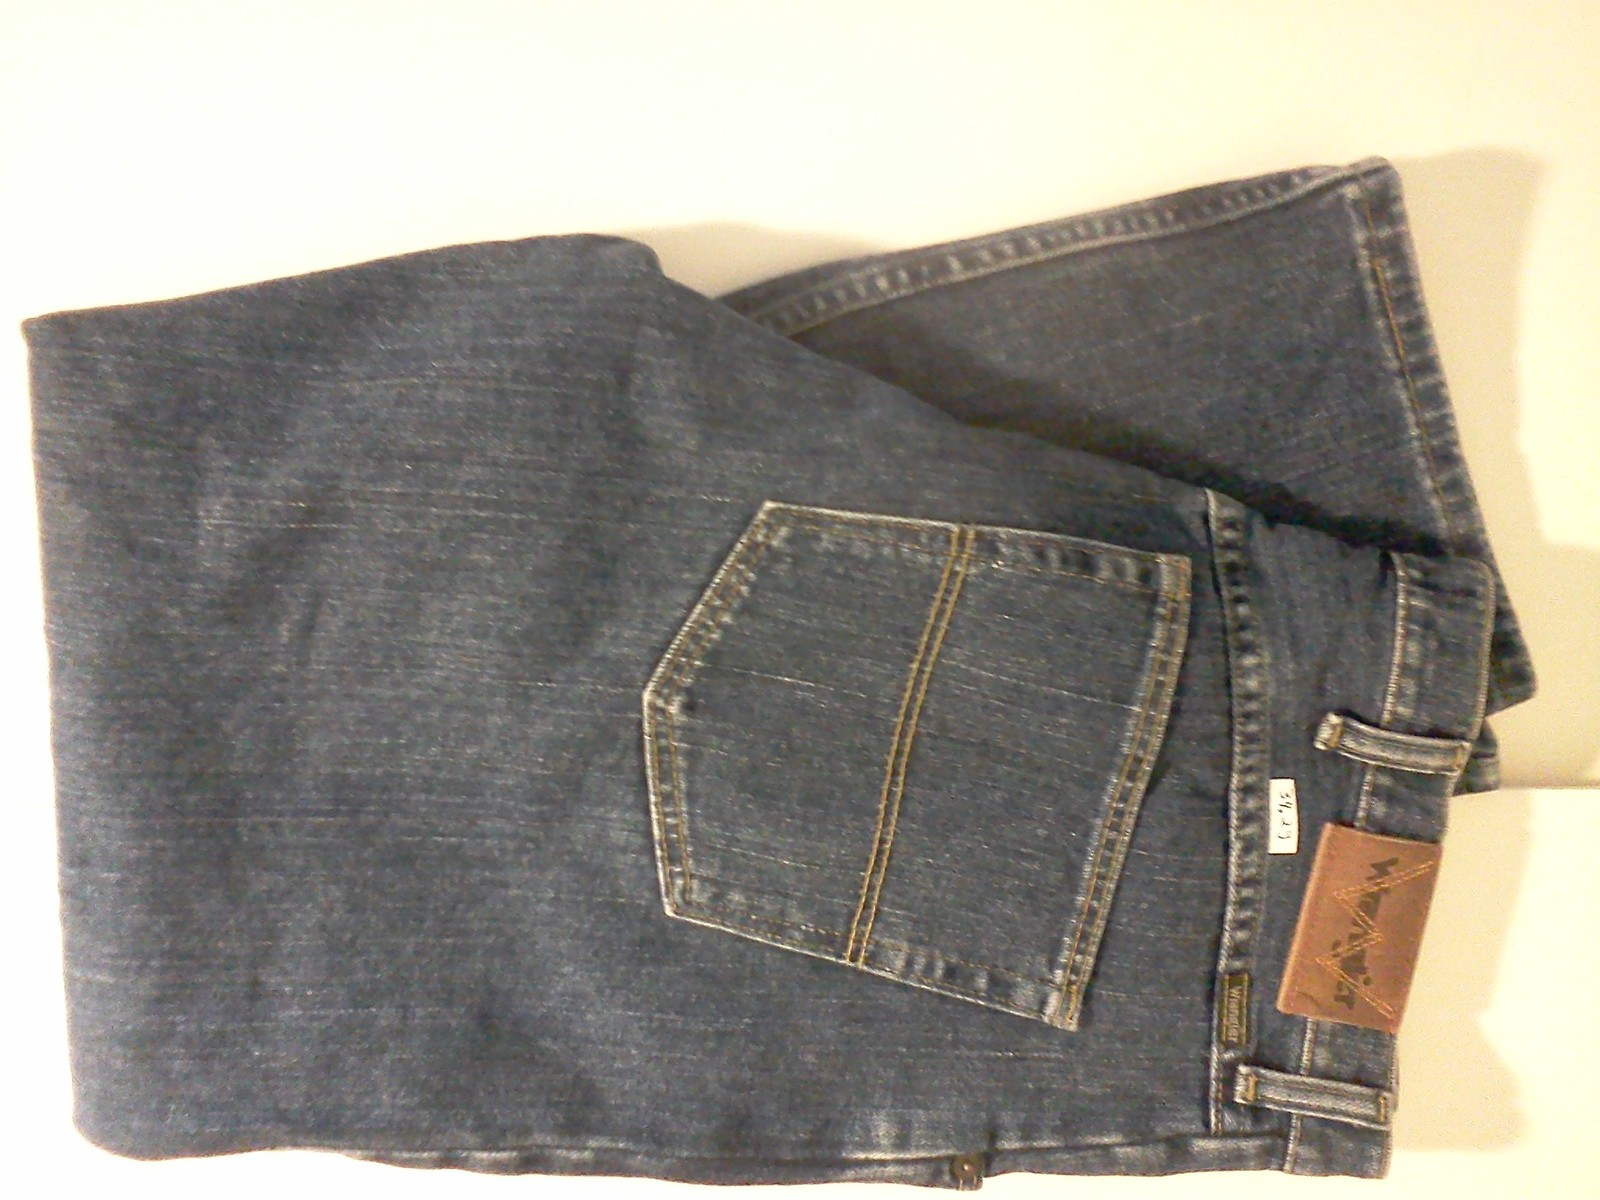 Primary image for Wrangler 34 x 29 jeans blue mdxx